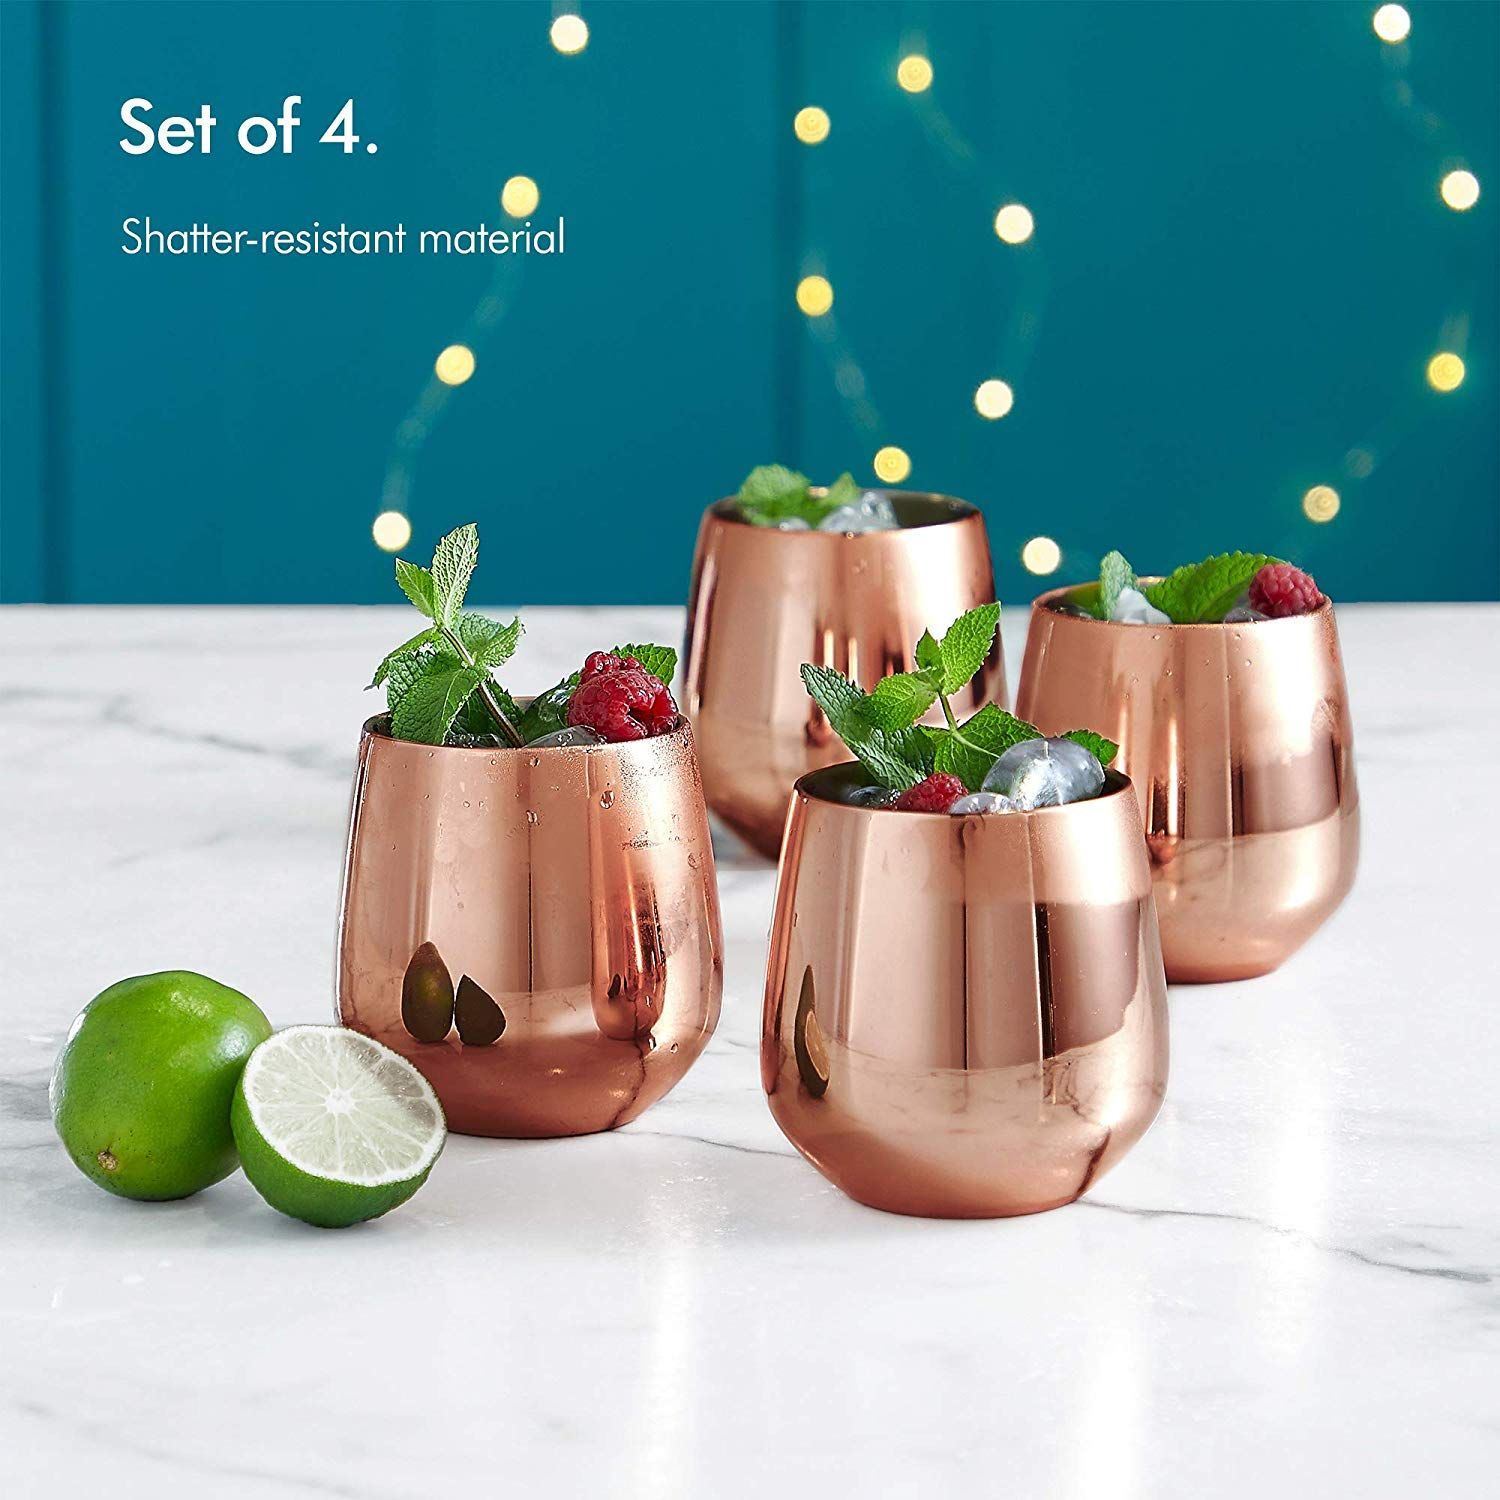 11aa5d81c50 Amazon.com: VonShef Copper Stemless Wine Glasses, Stainless Steel 12oz  Double Walled Insulated, Set of 4 Wine Tumblers with Gift Box: Kitchen &  Dining